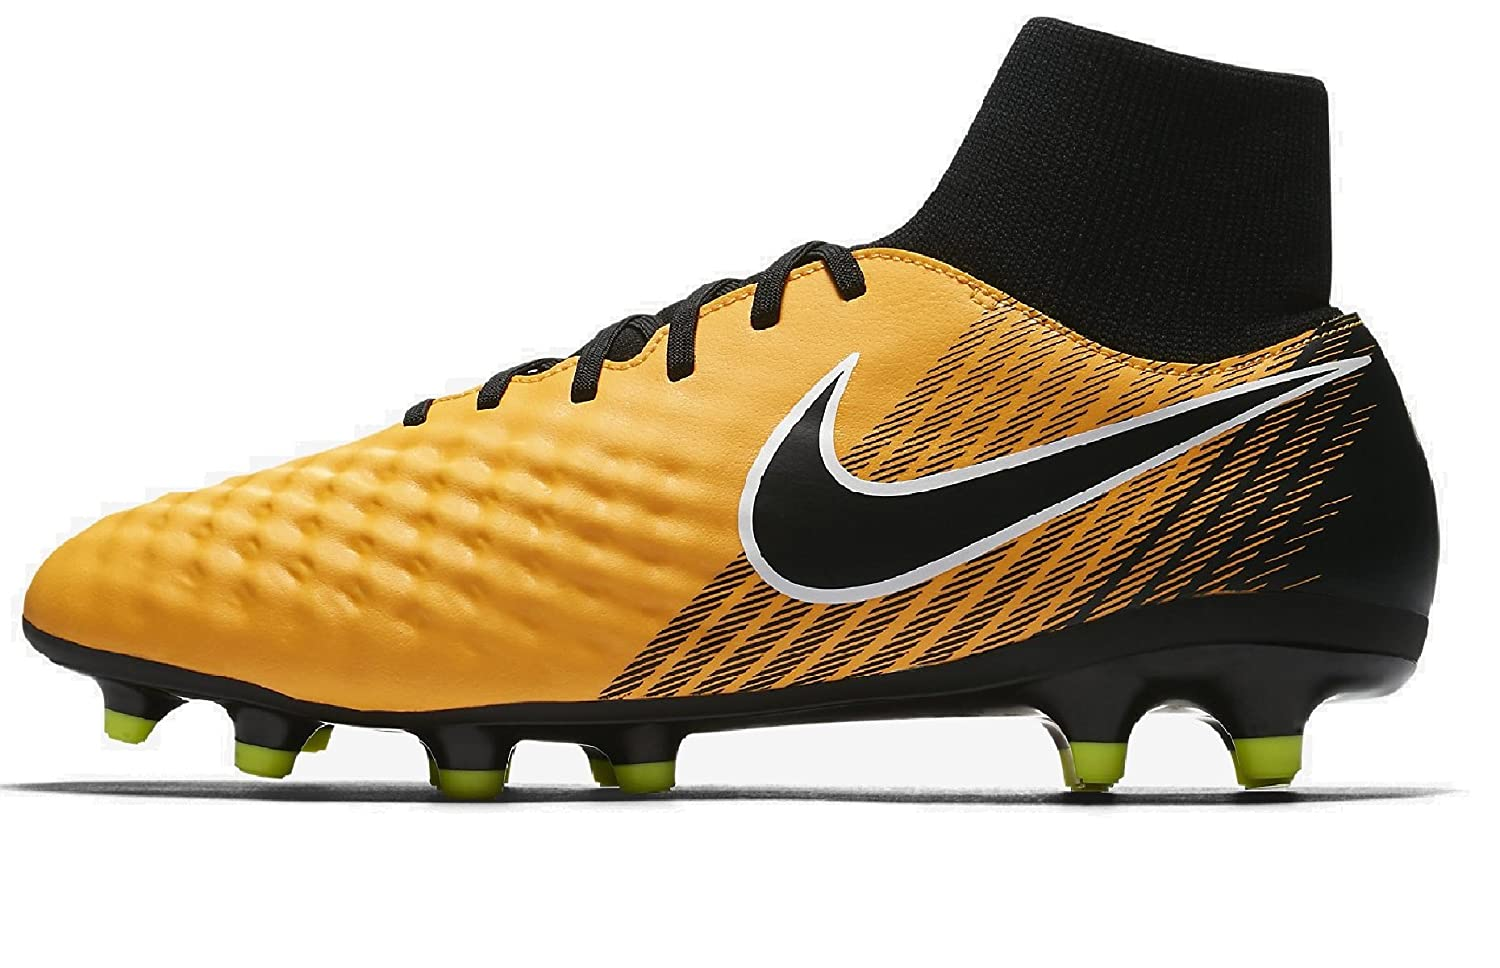 eea5d6a27b2cf Amazon.com | NIKE Magista ONDA II Dynamic FIT FG Firm-Ground Soccer Cleat  (6.5) | Soccer